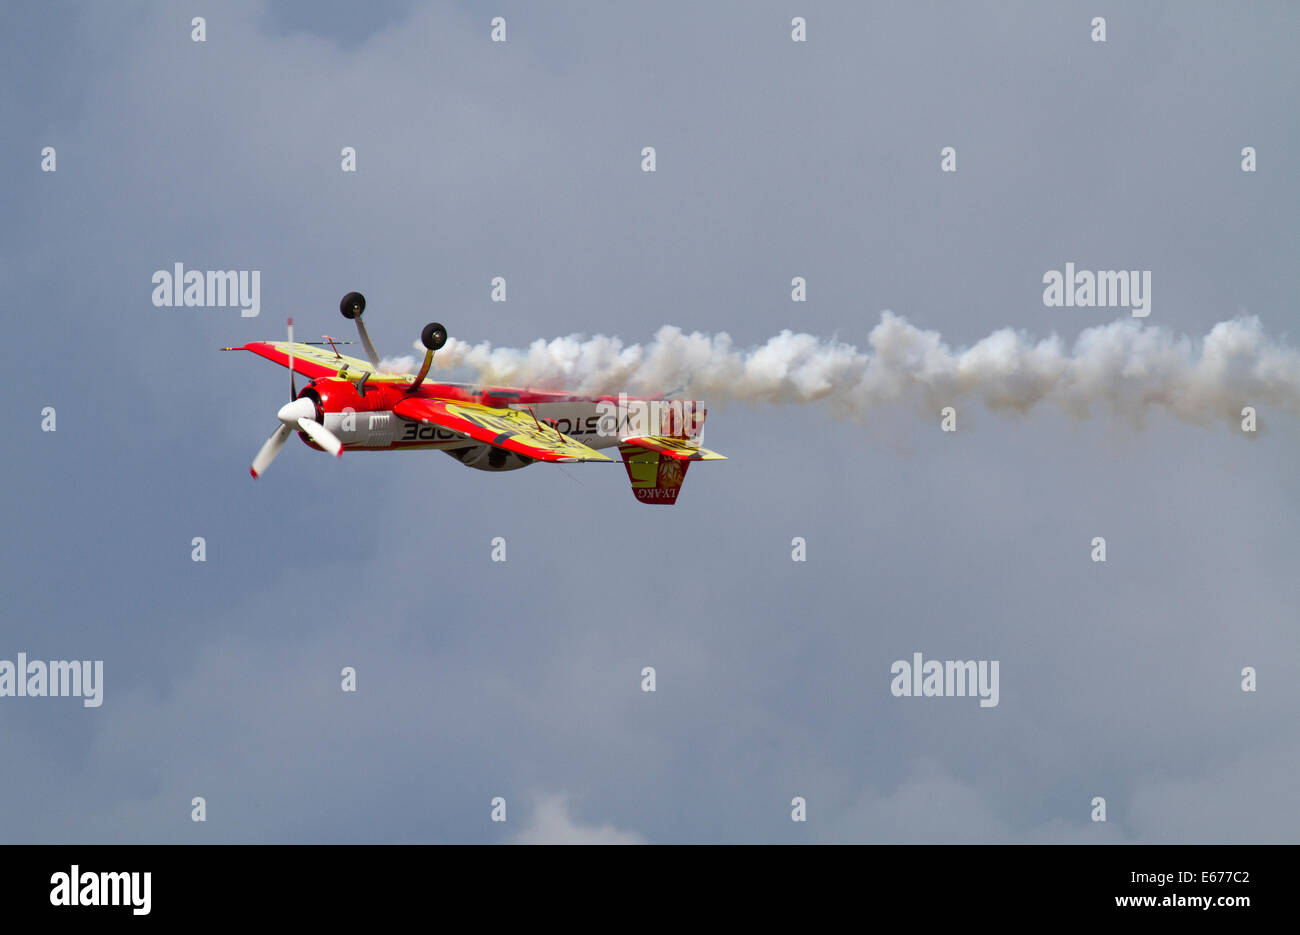 Helsinki, Finland, 16th of August, 2014. Lithuanian aerobatic pilot Jurgis Kairys flyed at Helsinki-Malmi Airport - Stock Image